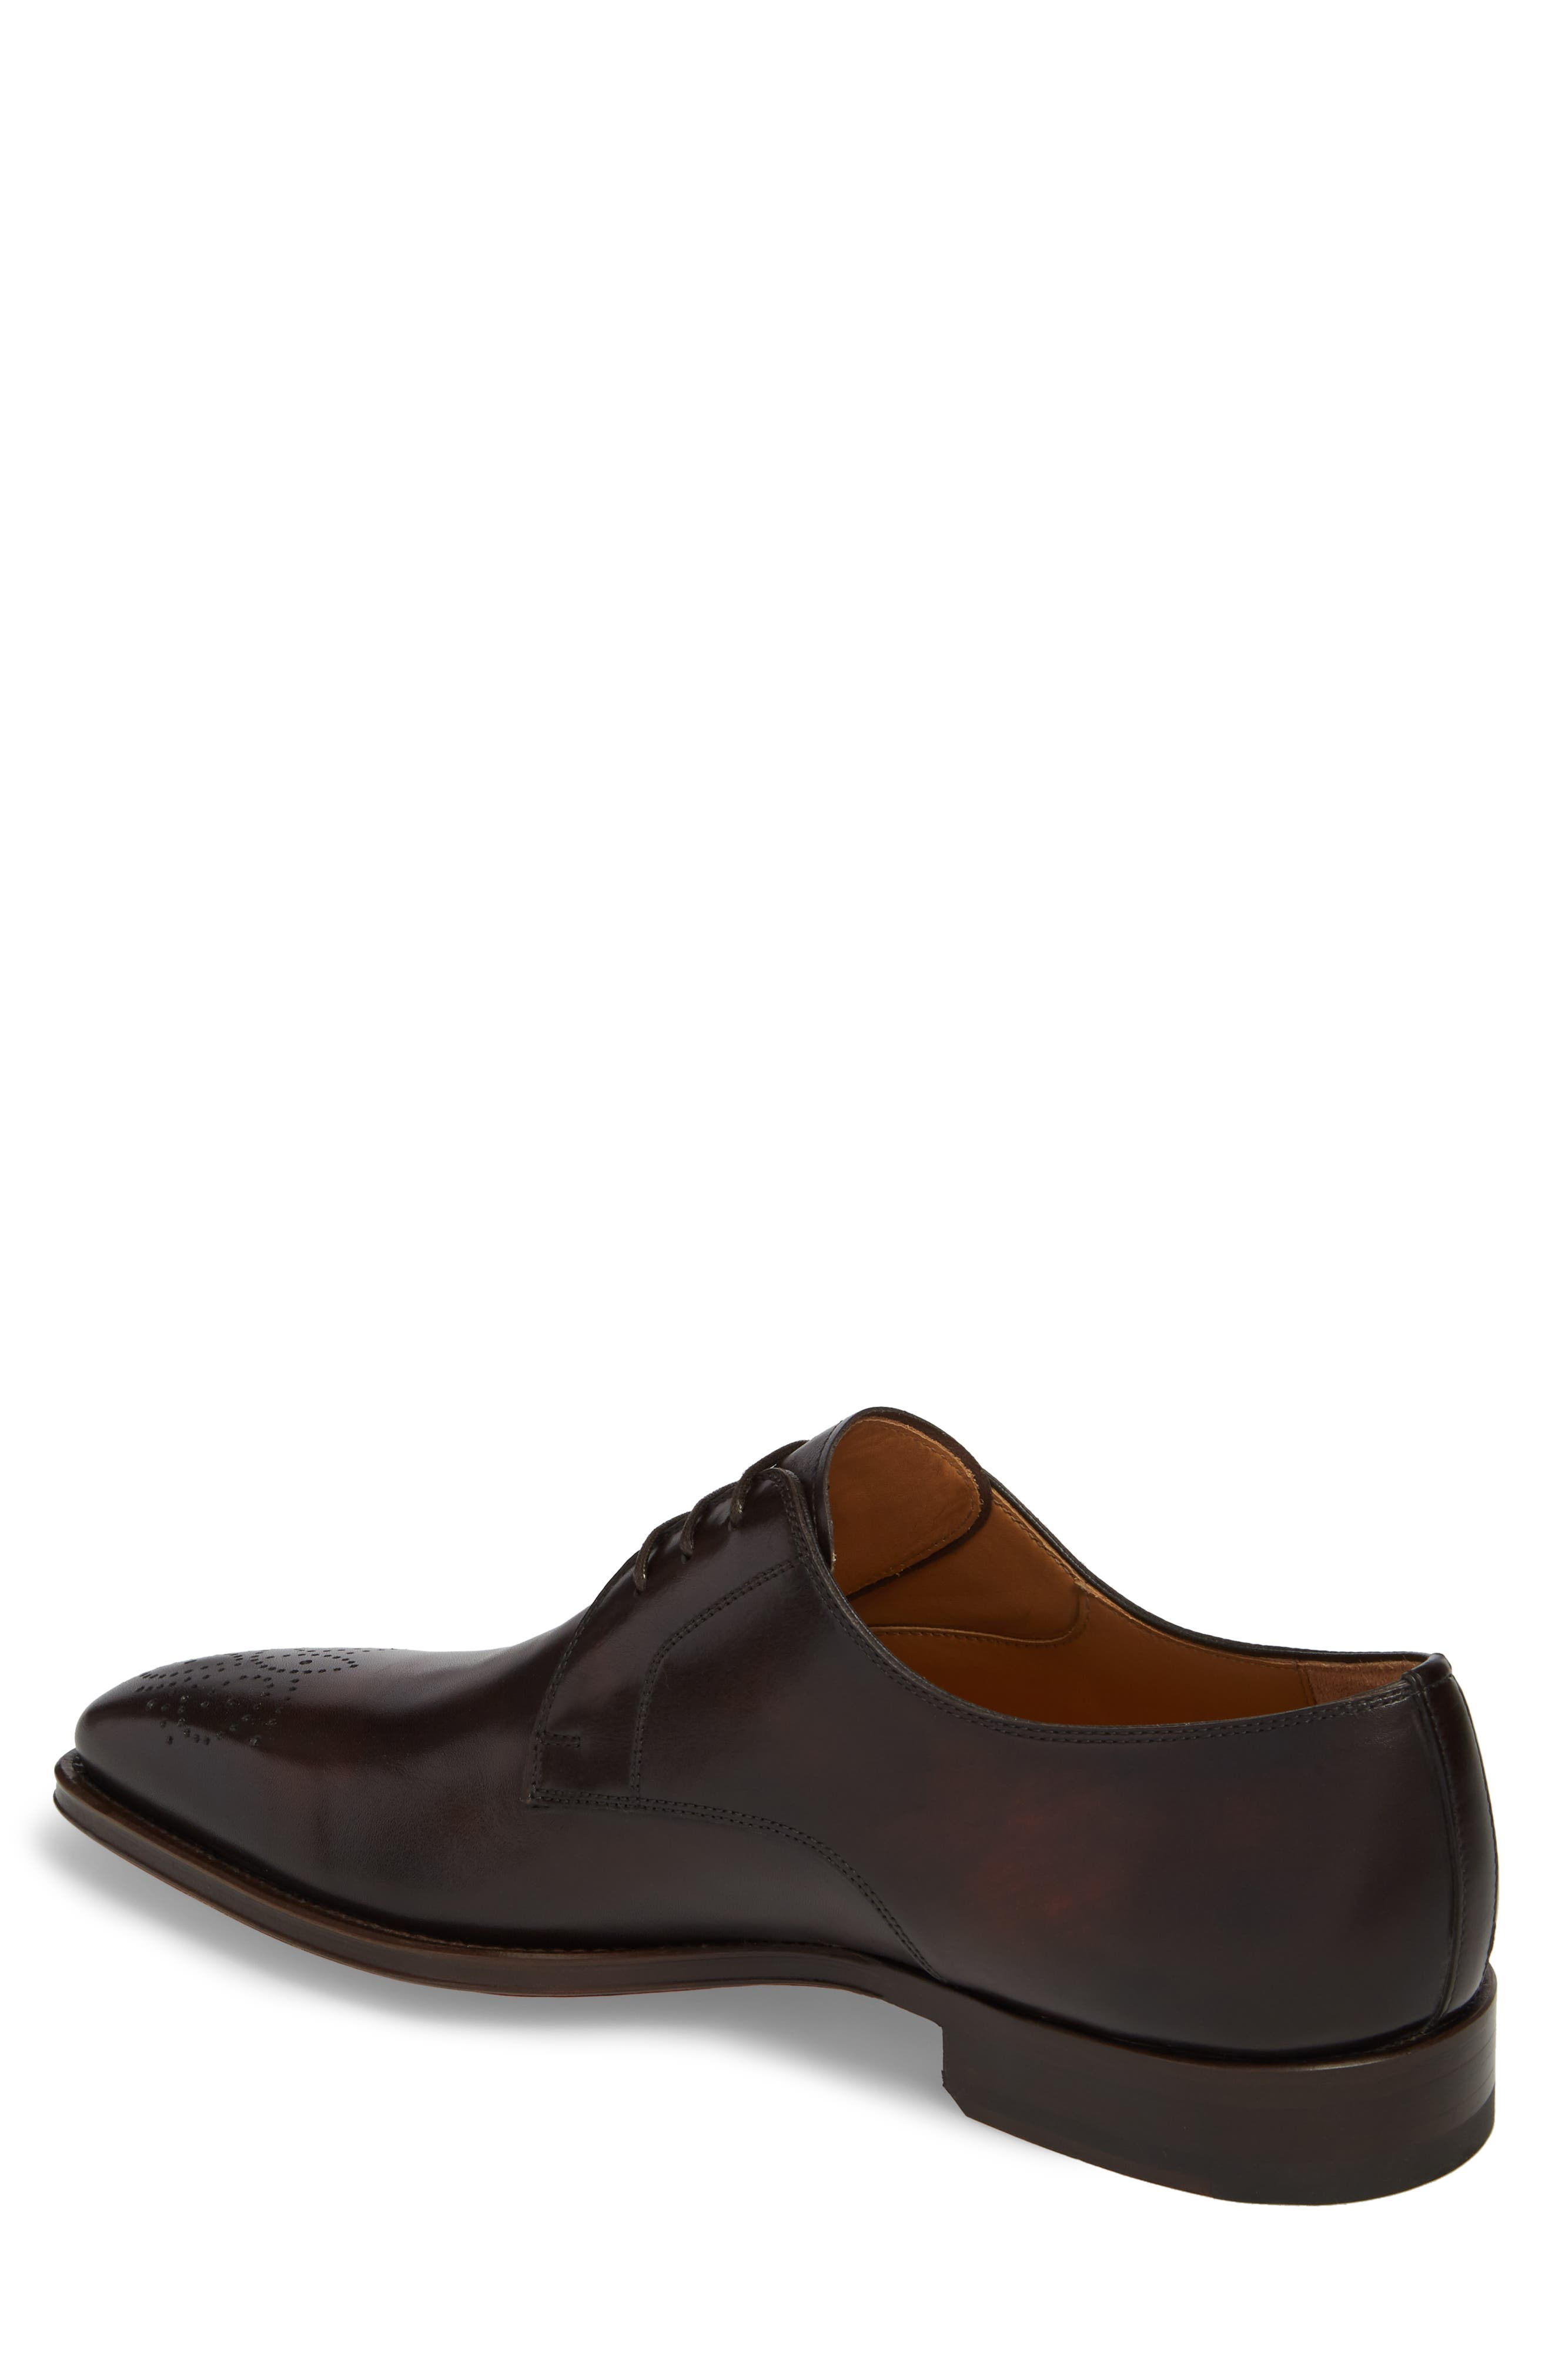 Gerardo Medallion Toe Derby,                             Alternate thumbnail 5, color,                             Brown Leather